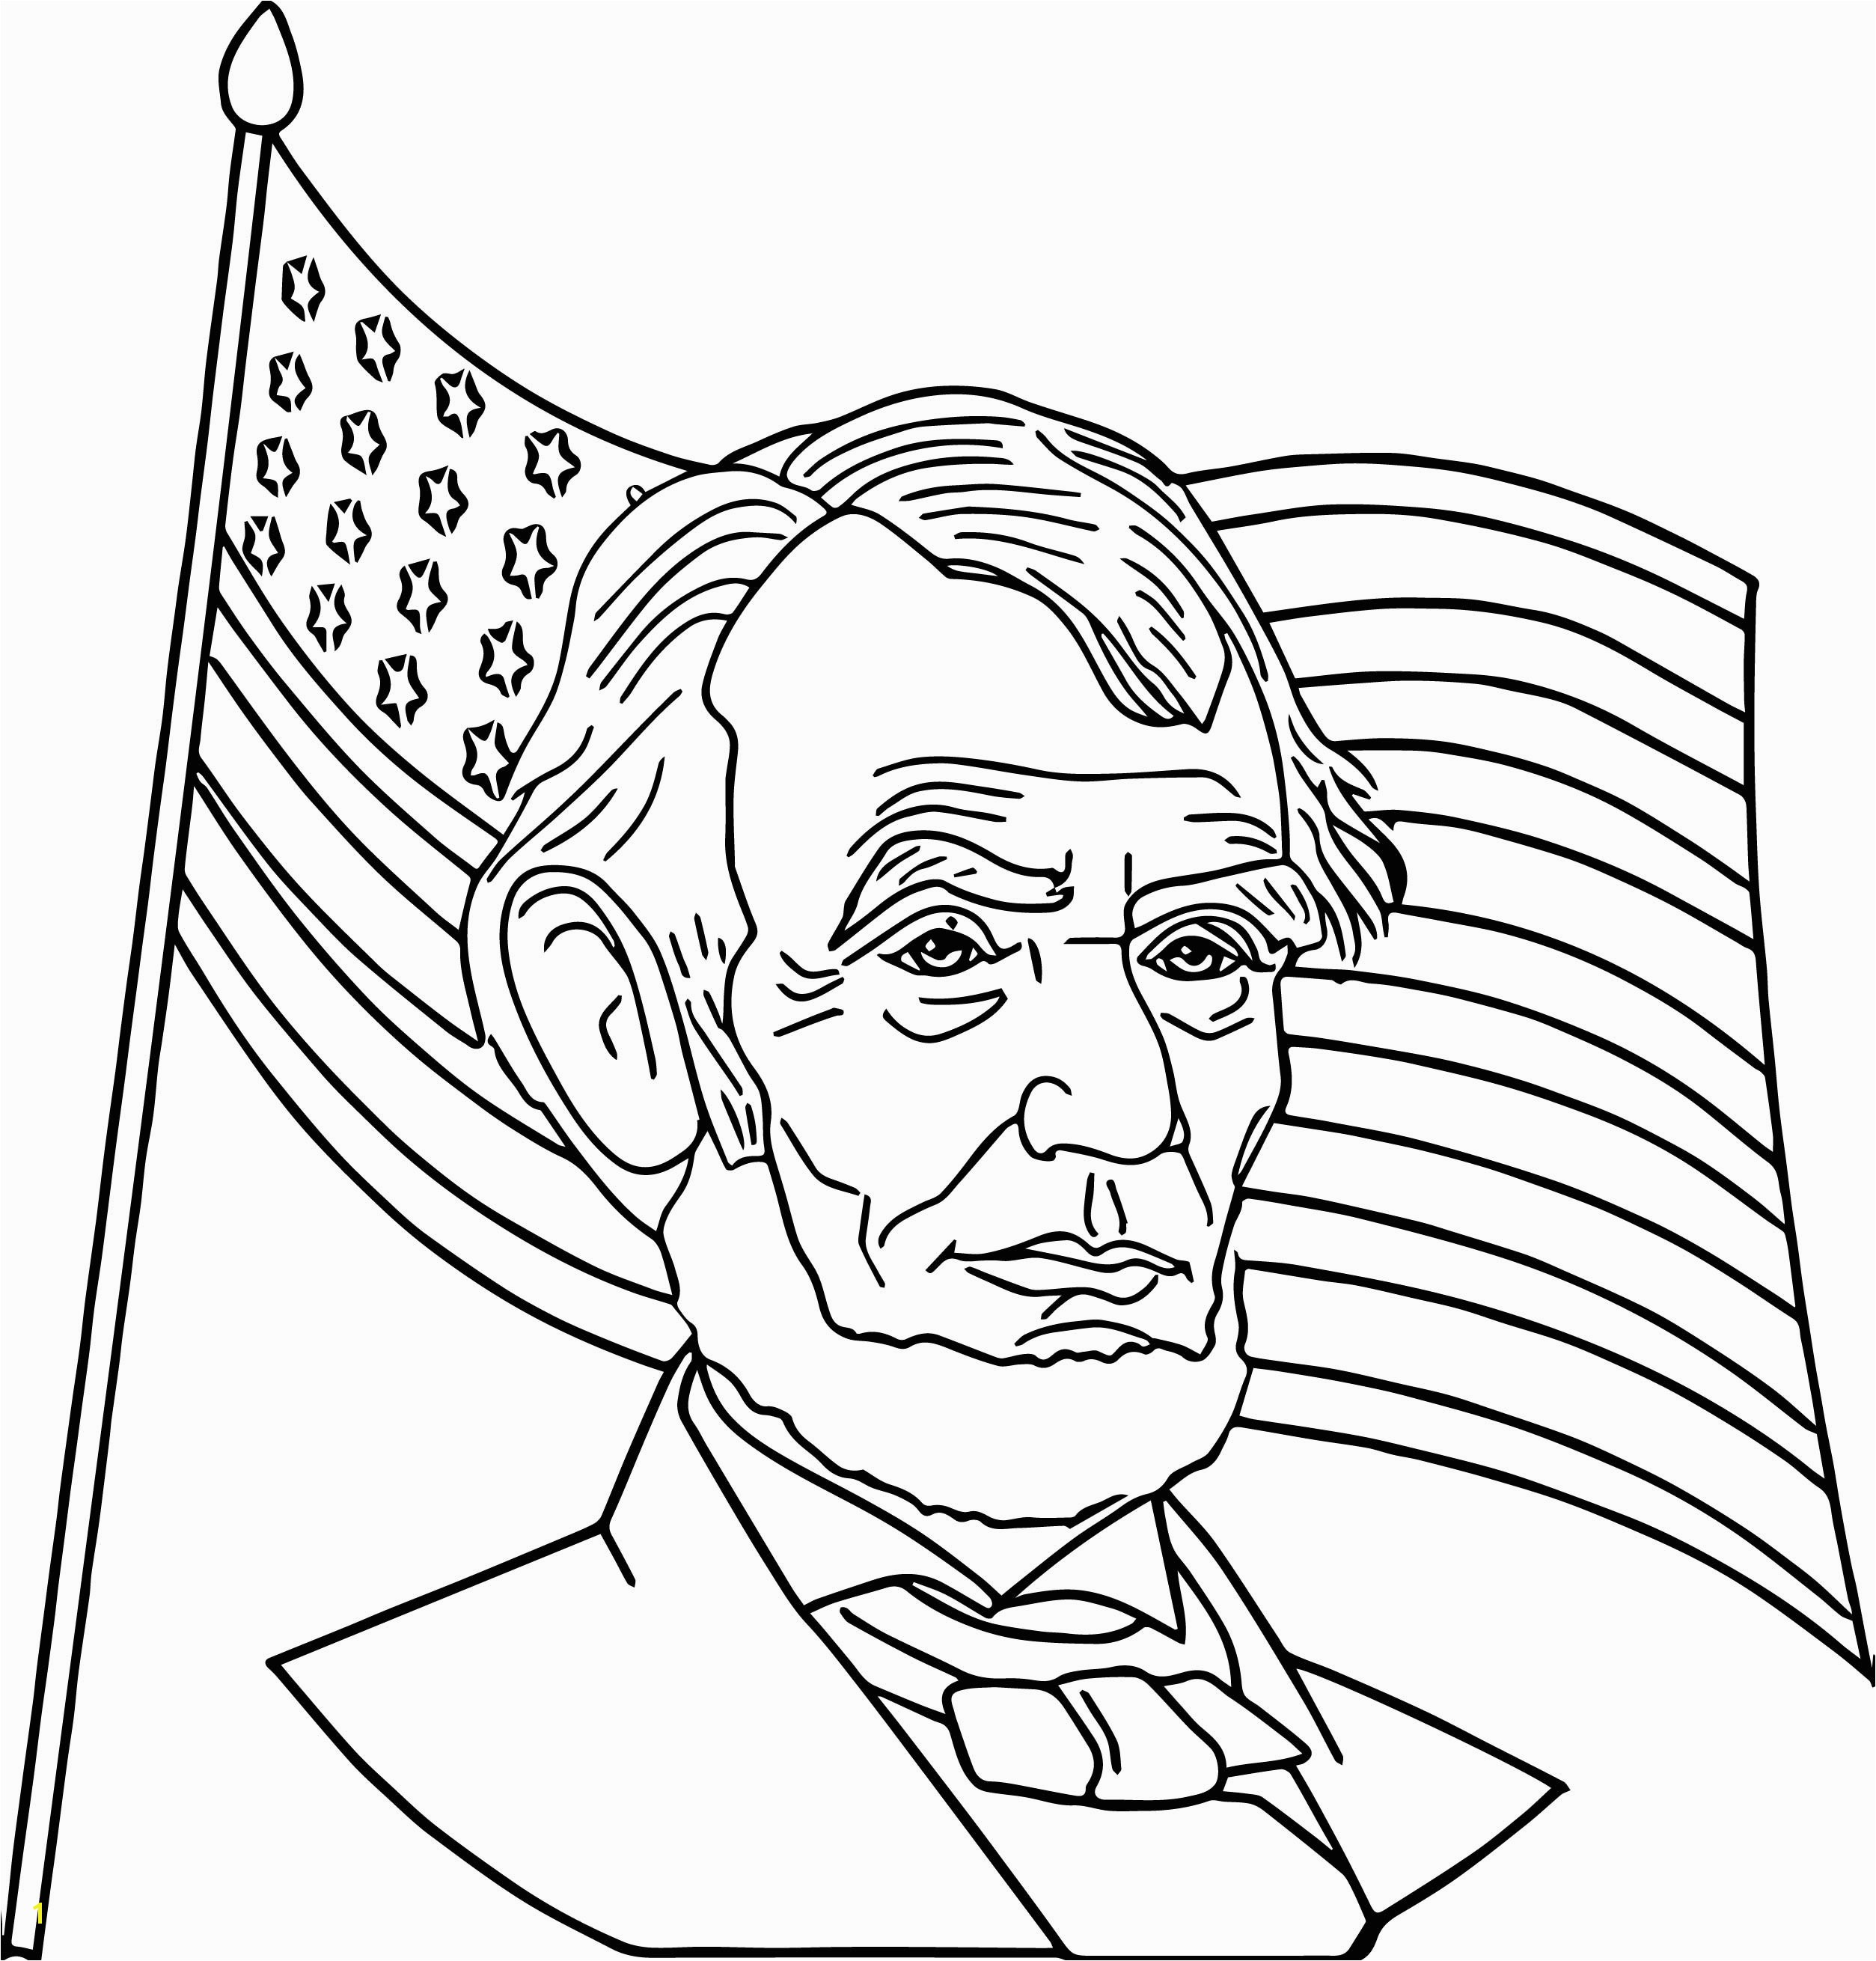 abe lincoln coloring sheet abraham lincoln coloring page mustespresso